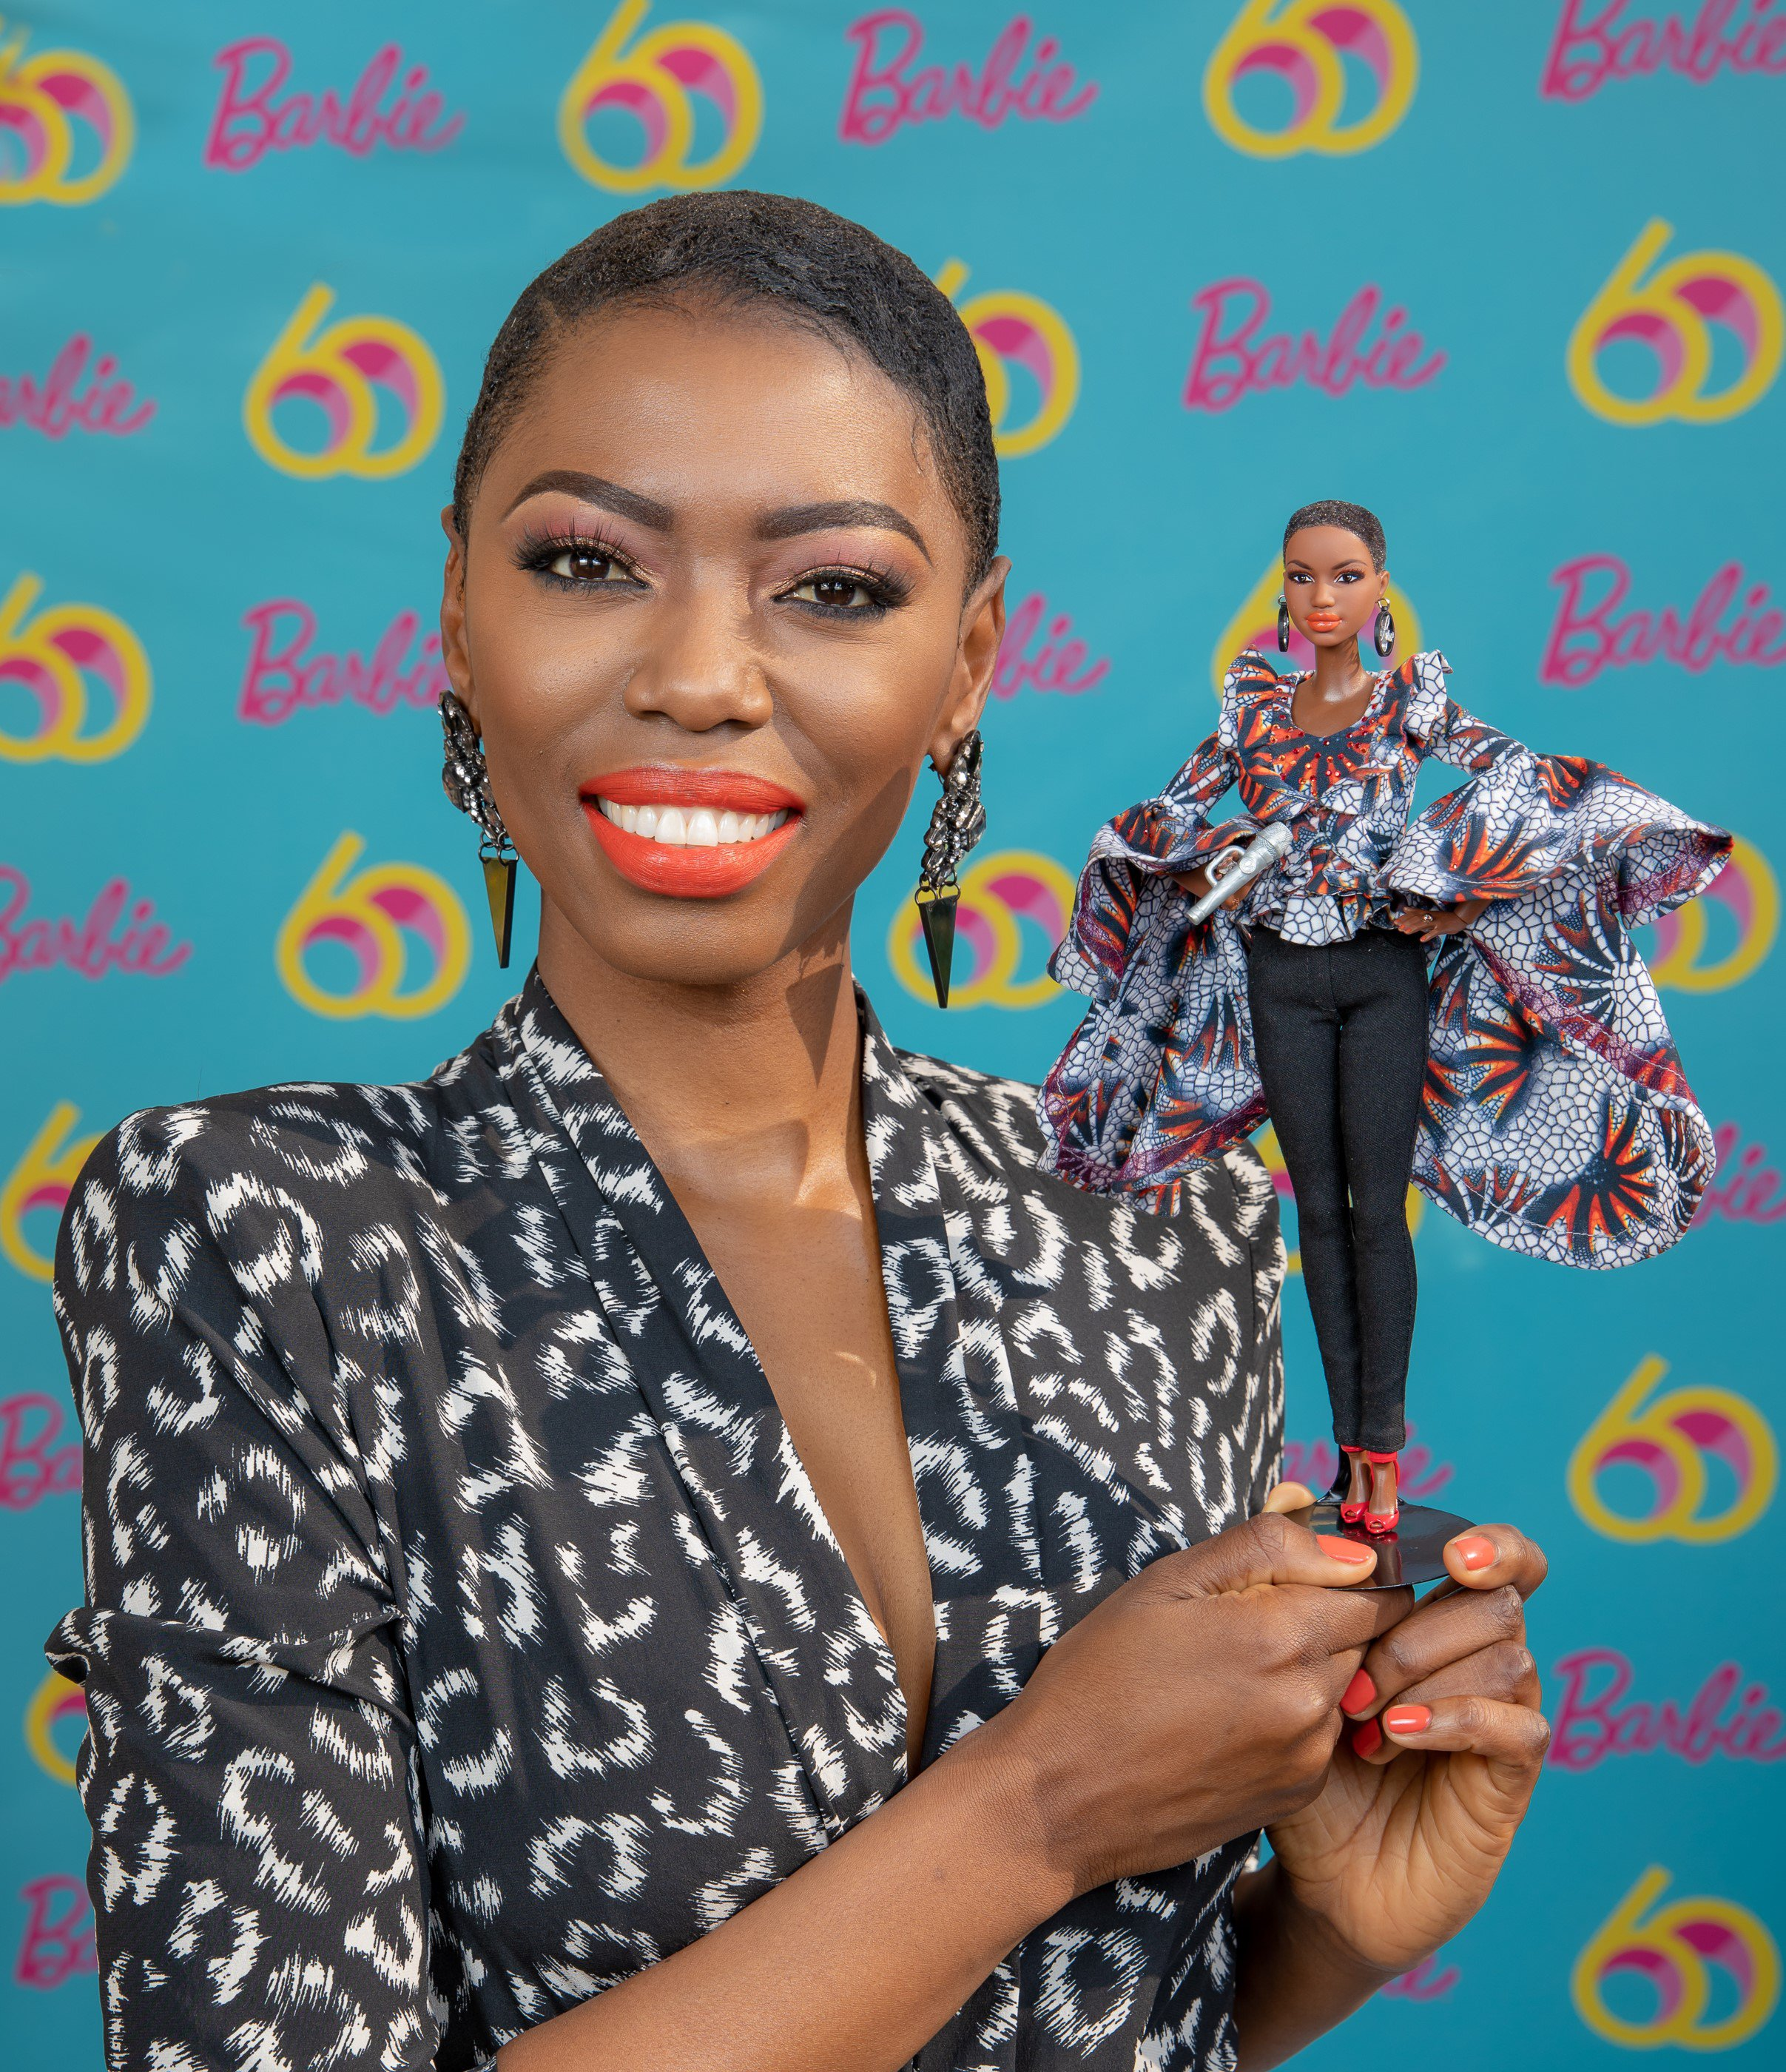 South African Singer Lira Is Africa's First Barbie Doll. Here's Why That's a Huge Deal.